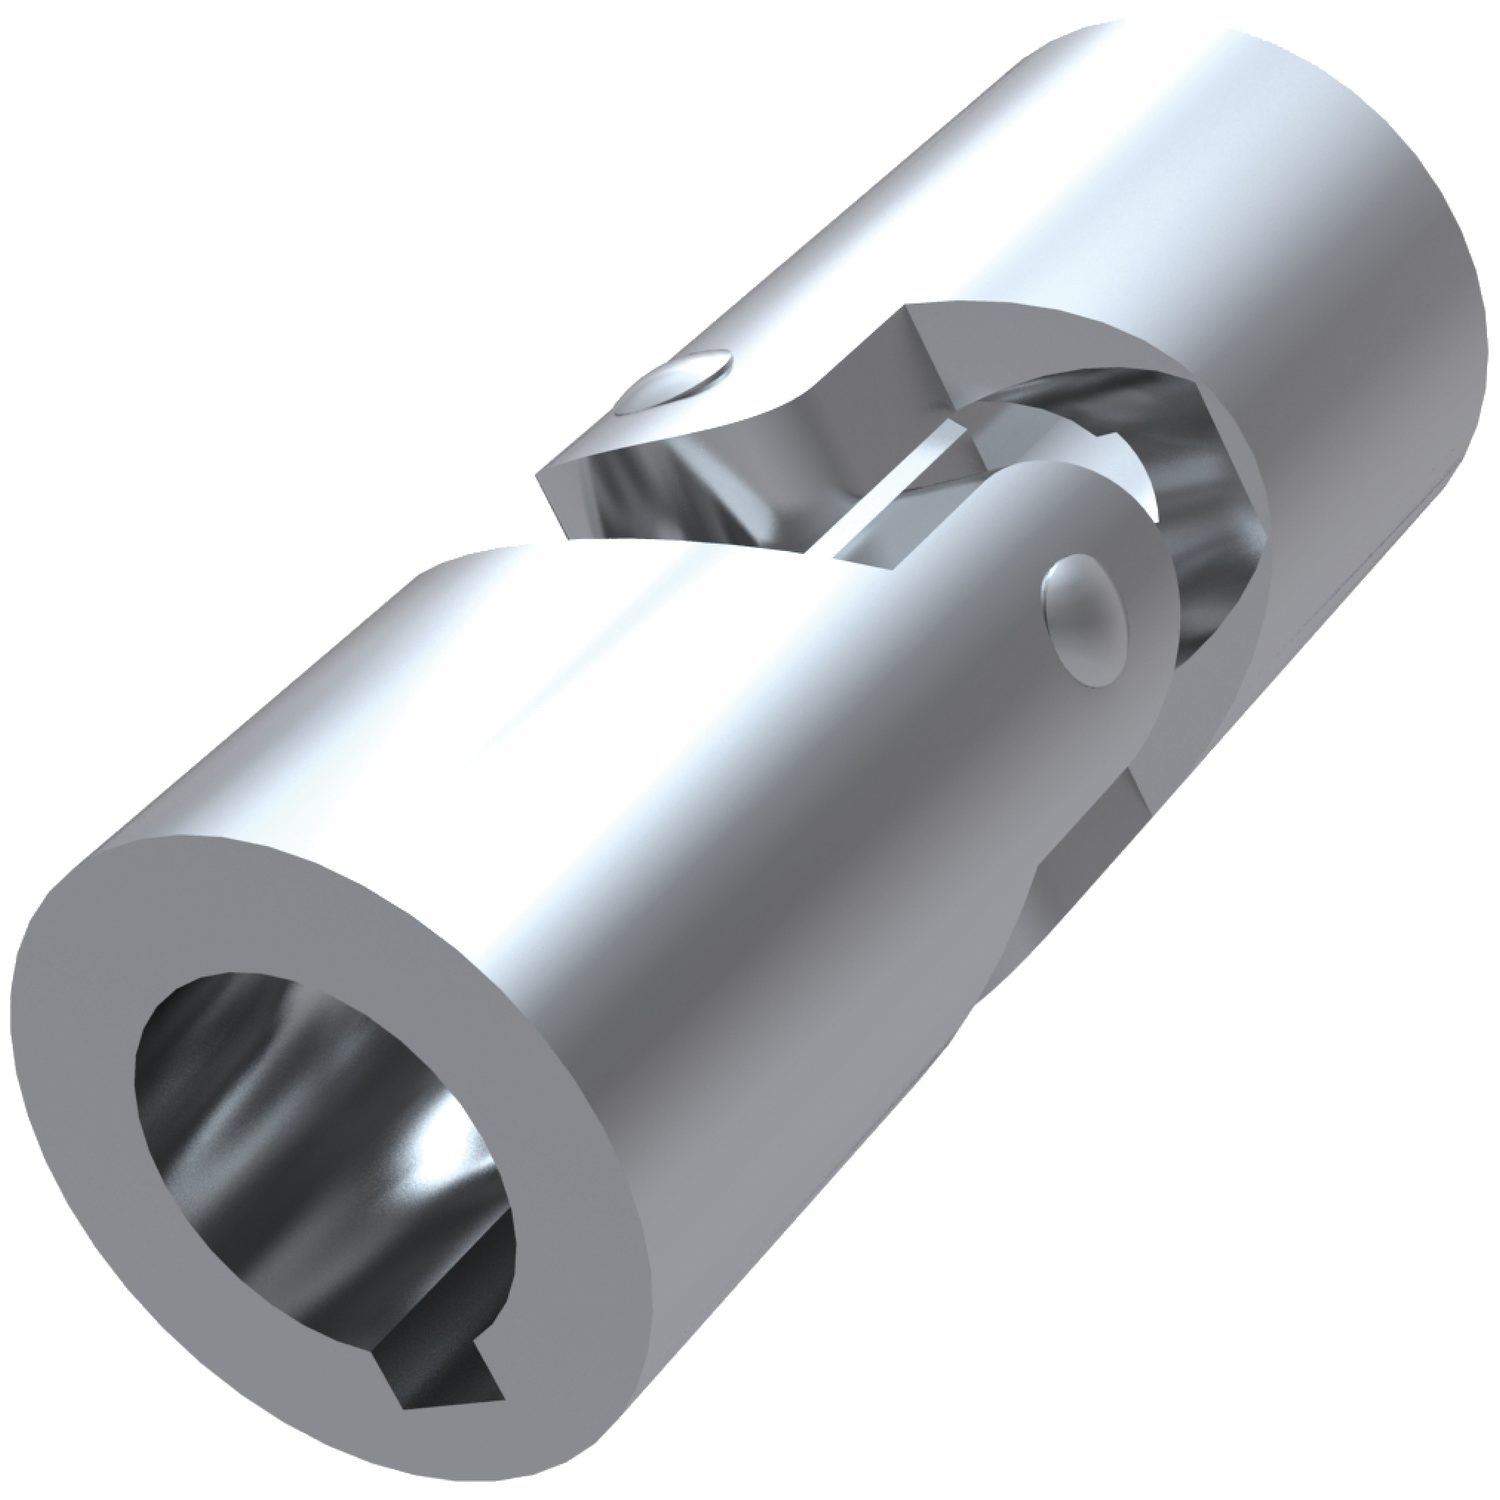 R3688 - Single Universal Joint